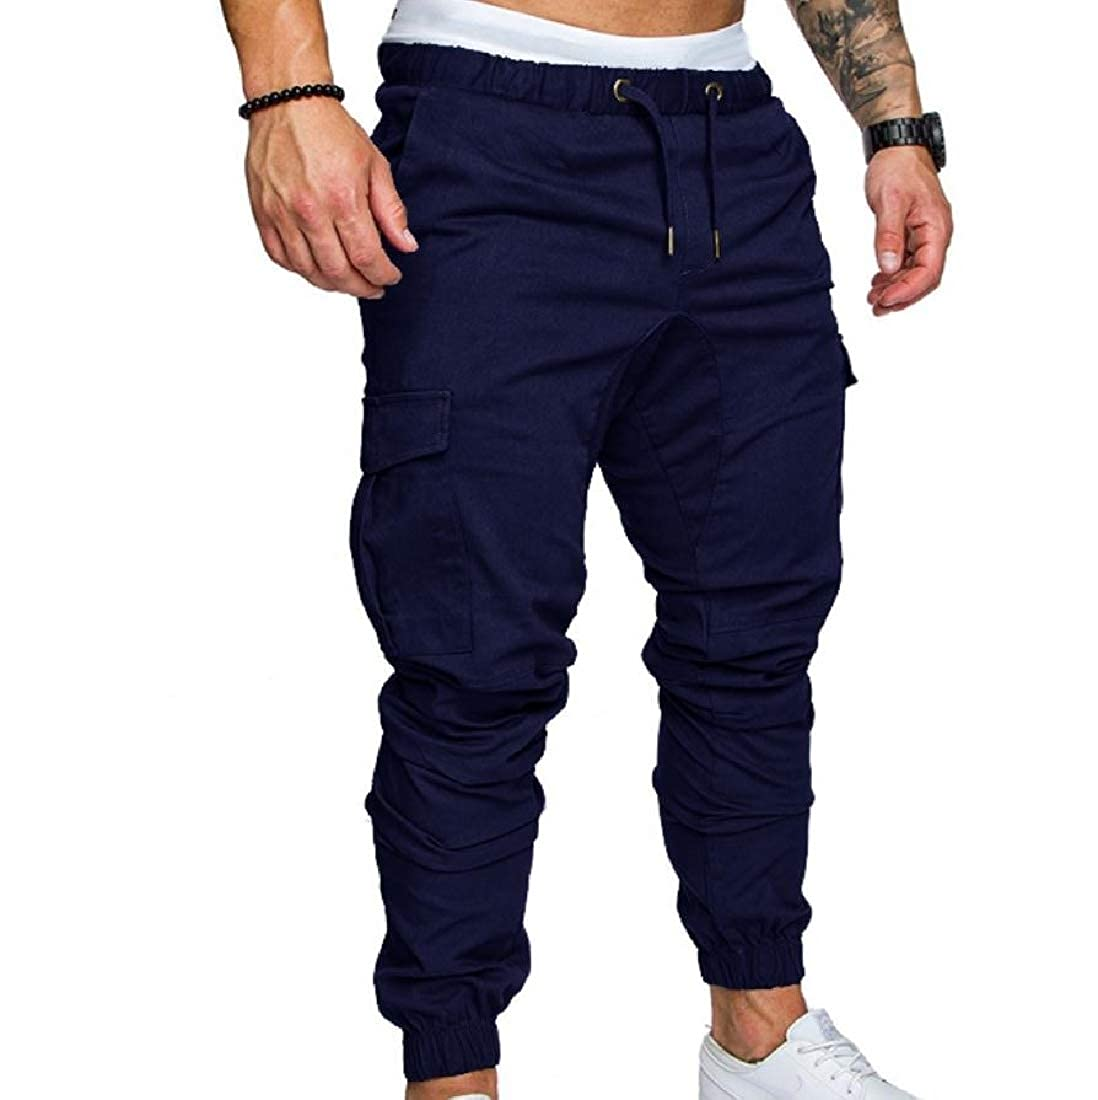 YUNY Mens Leisure Plus-Size Cargo Harem Comfortable Fit Jogger Pants Navy Blue M